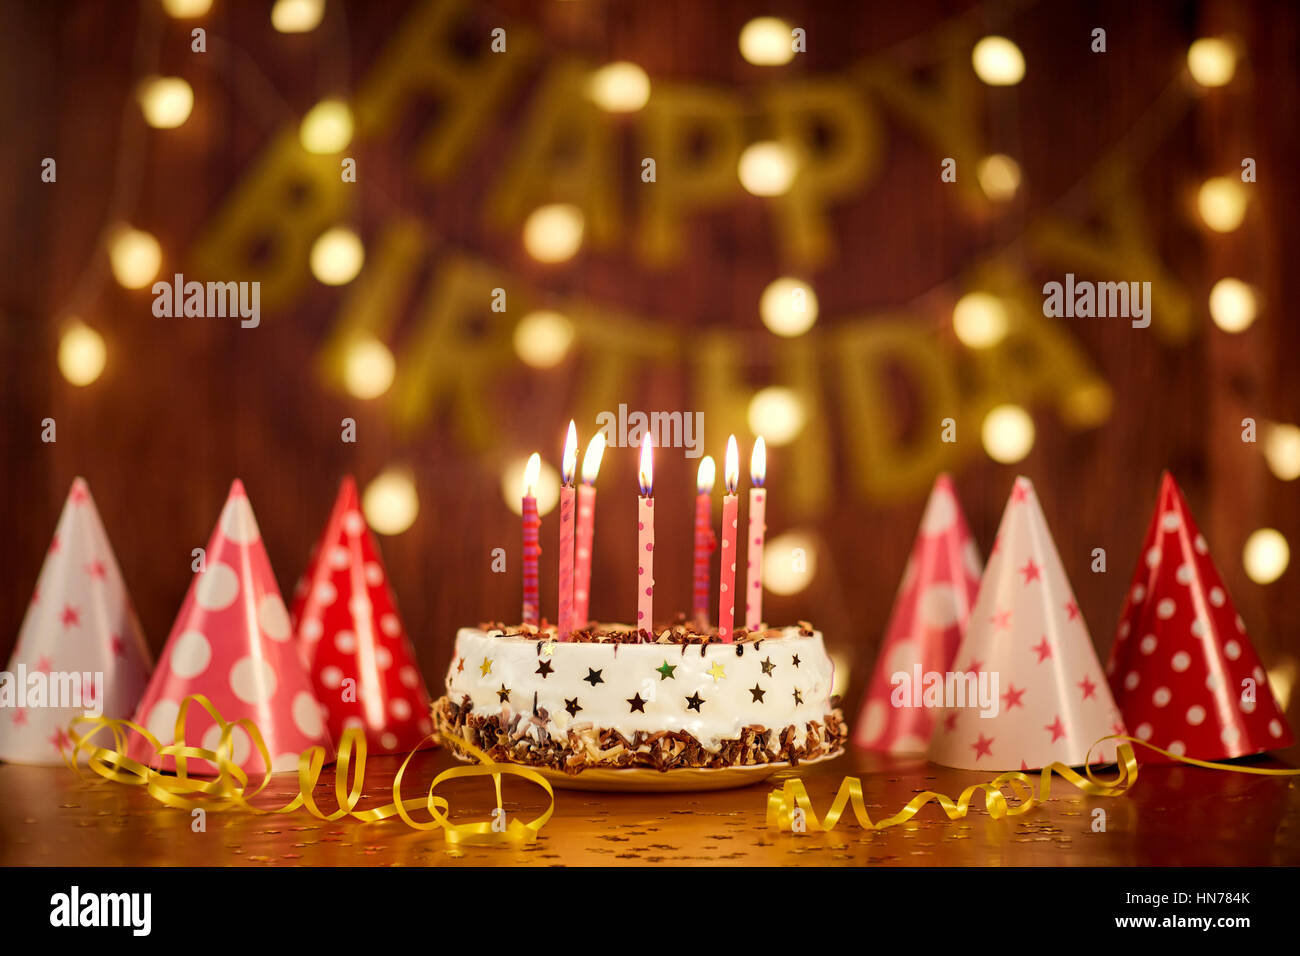 Birthday Cake Candles Dark Stock Photos Birthday Cake Candles Dark